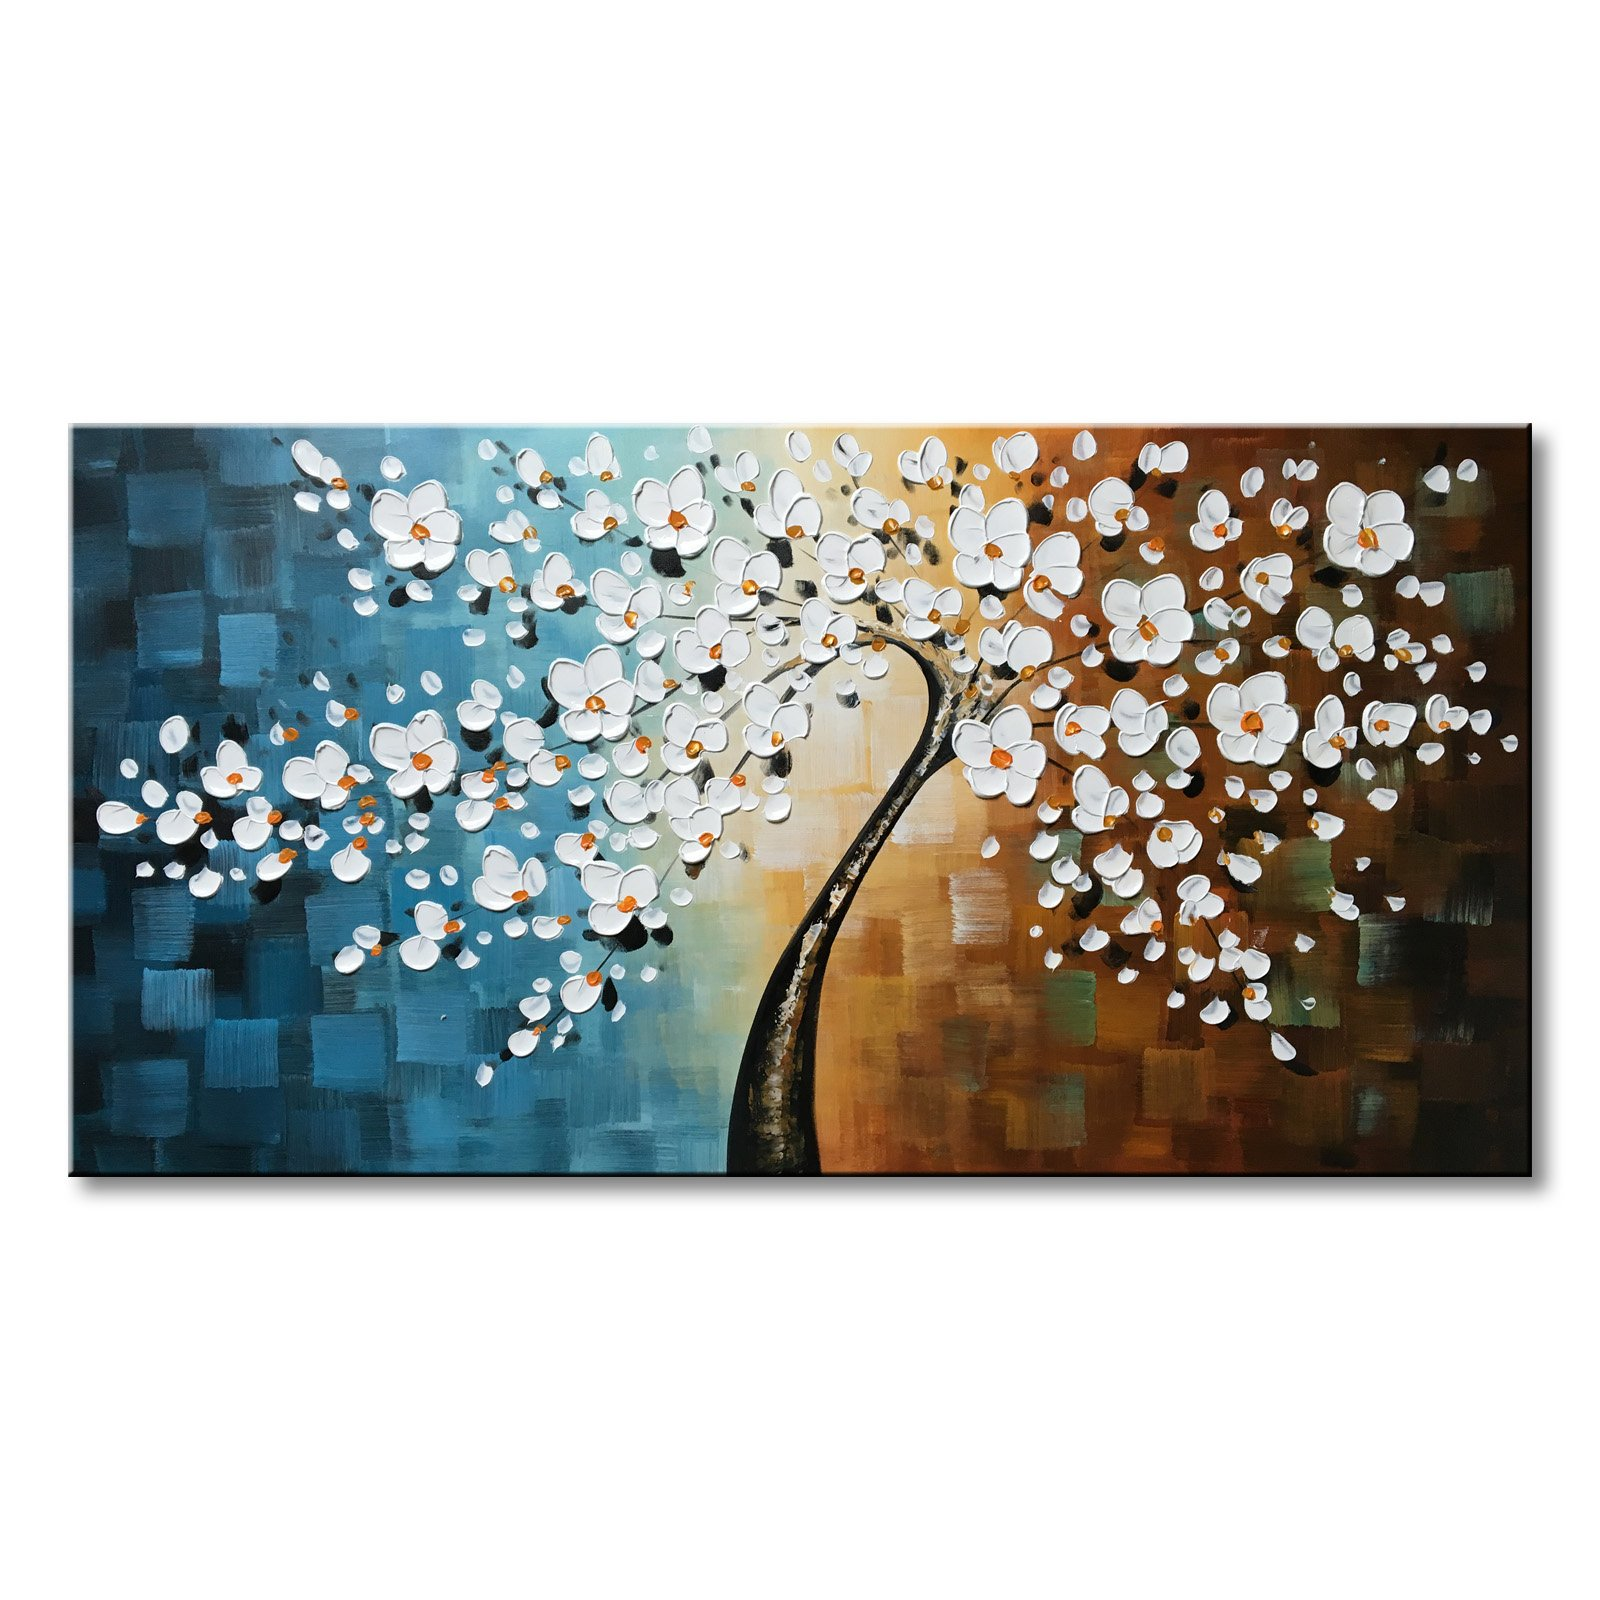 Large Handmade White Plum Blossom Flower Oil Painting on Canvas Floral Art Wall Decor